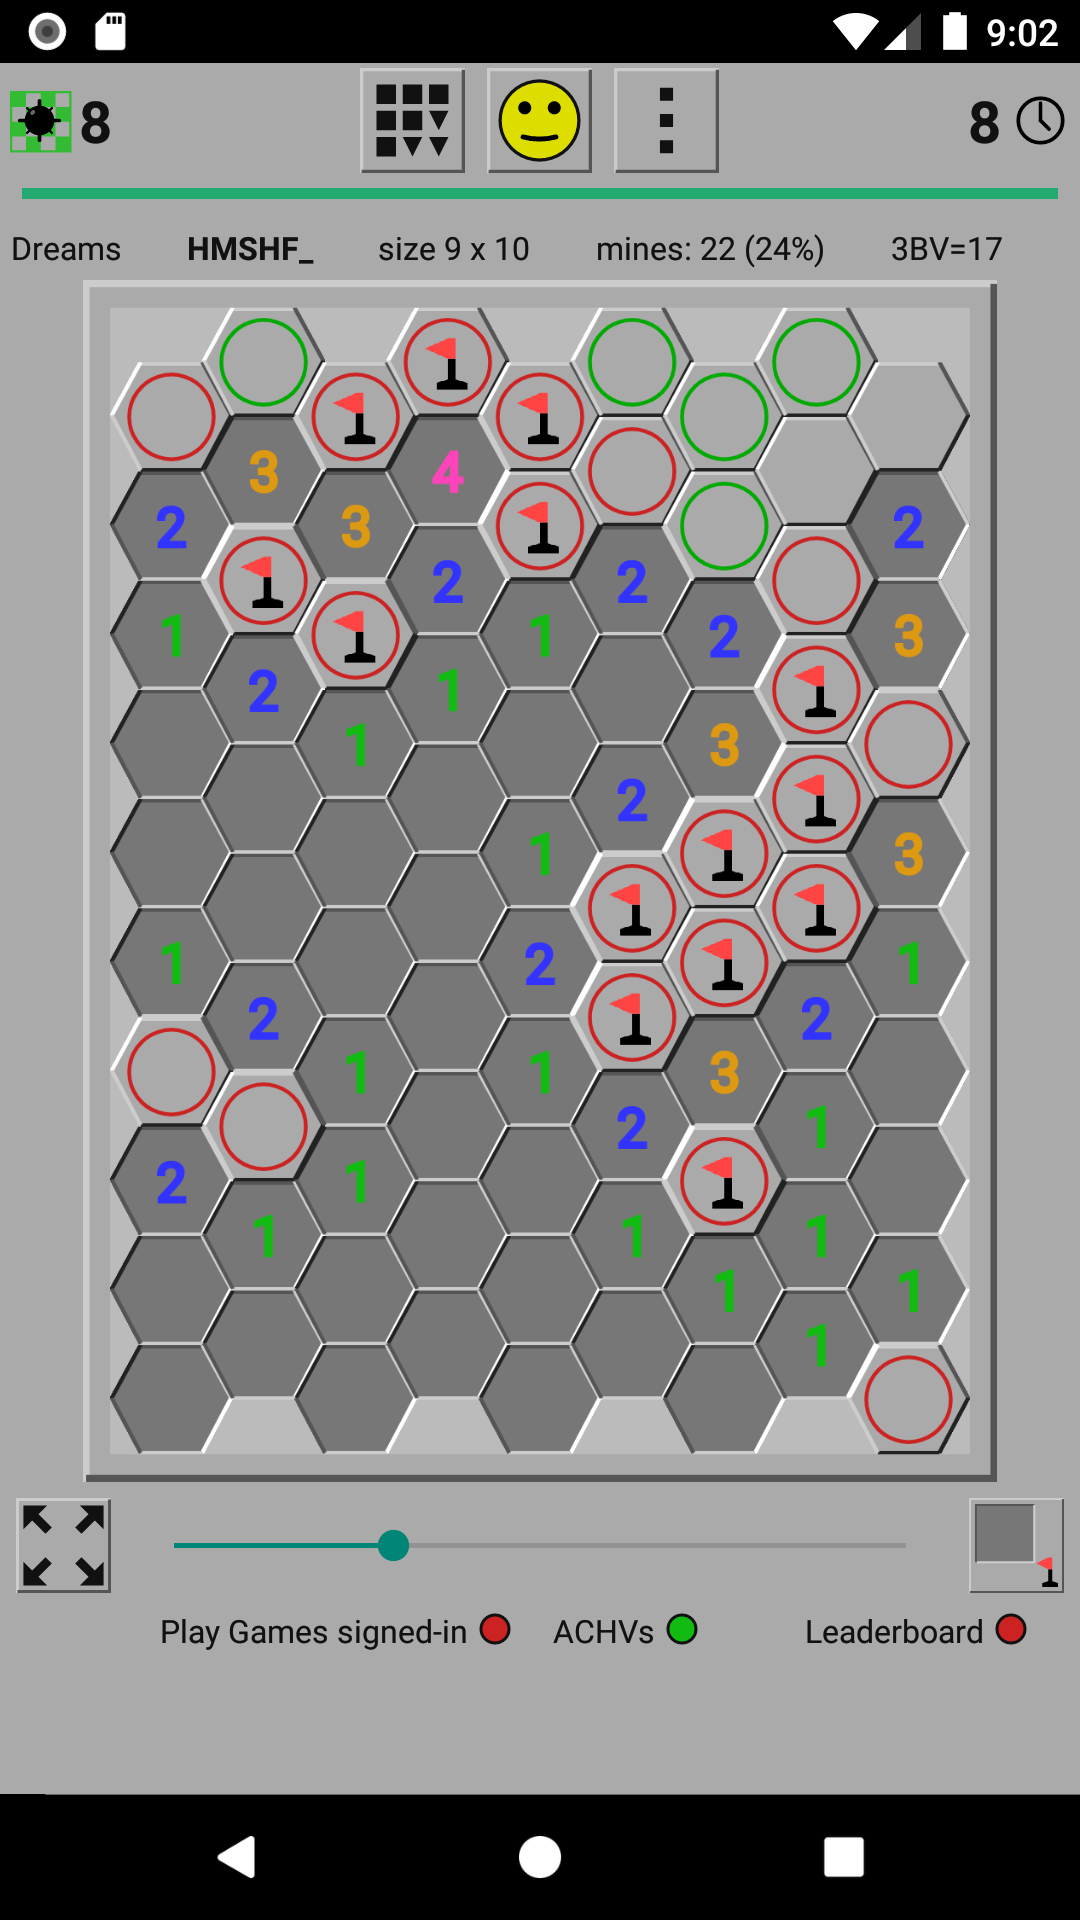 Minesweeper Dreams pic 2